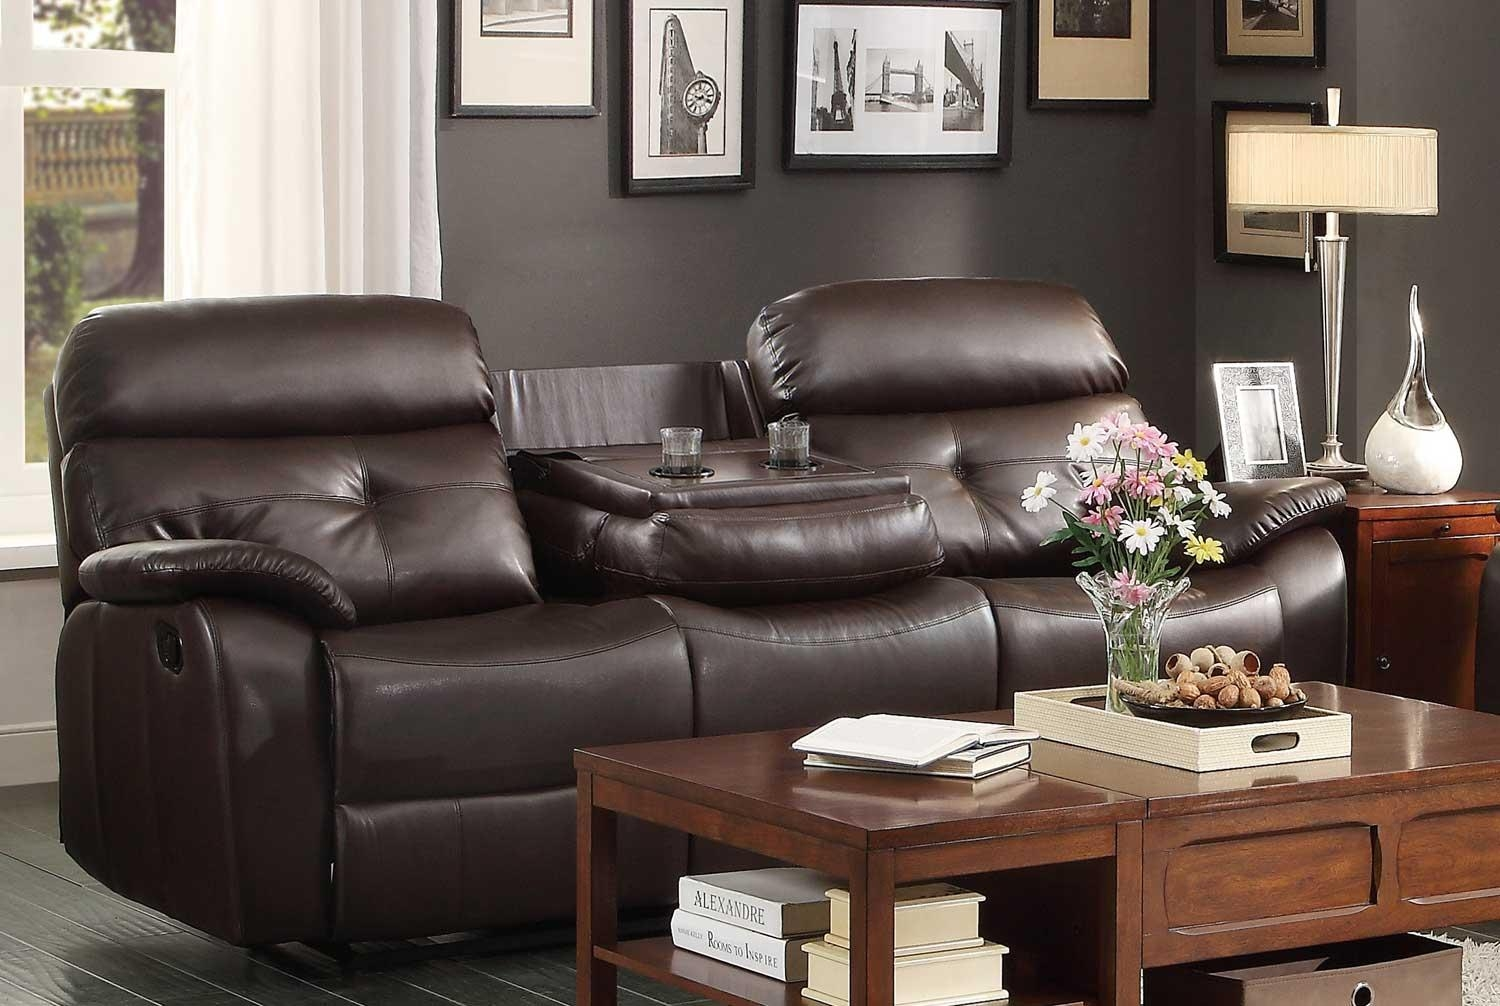 Furniture Reclining Sofas With Cup Holders Recliner For Sale And Intended For Sofas With Cup Holders (View 2 of 20)